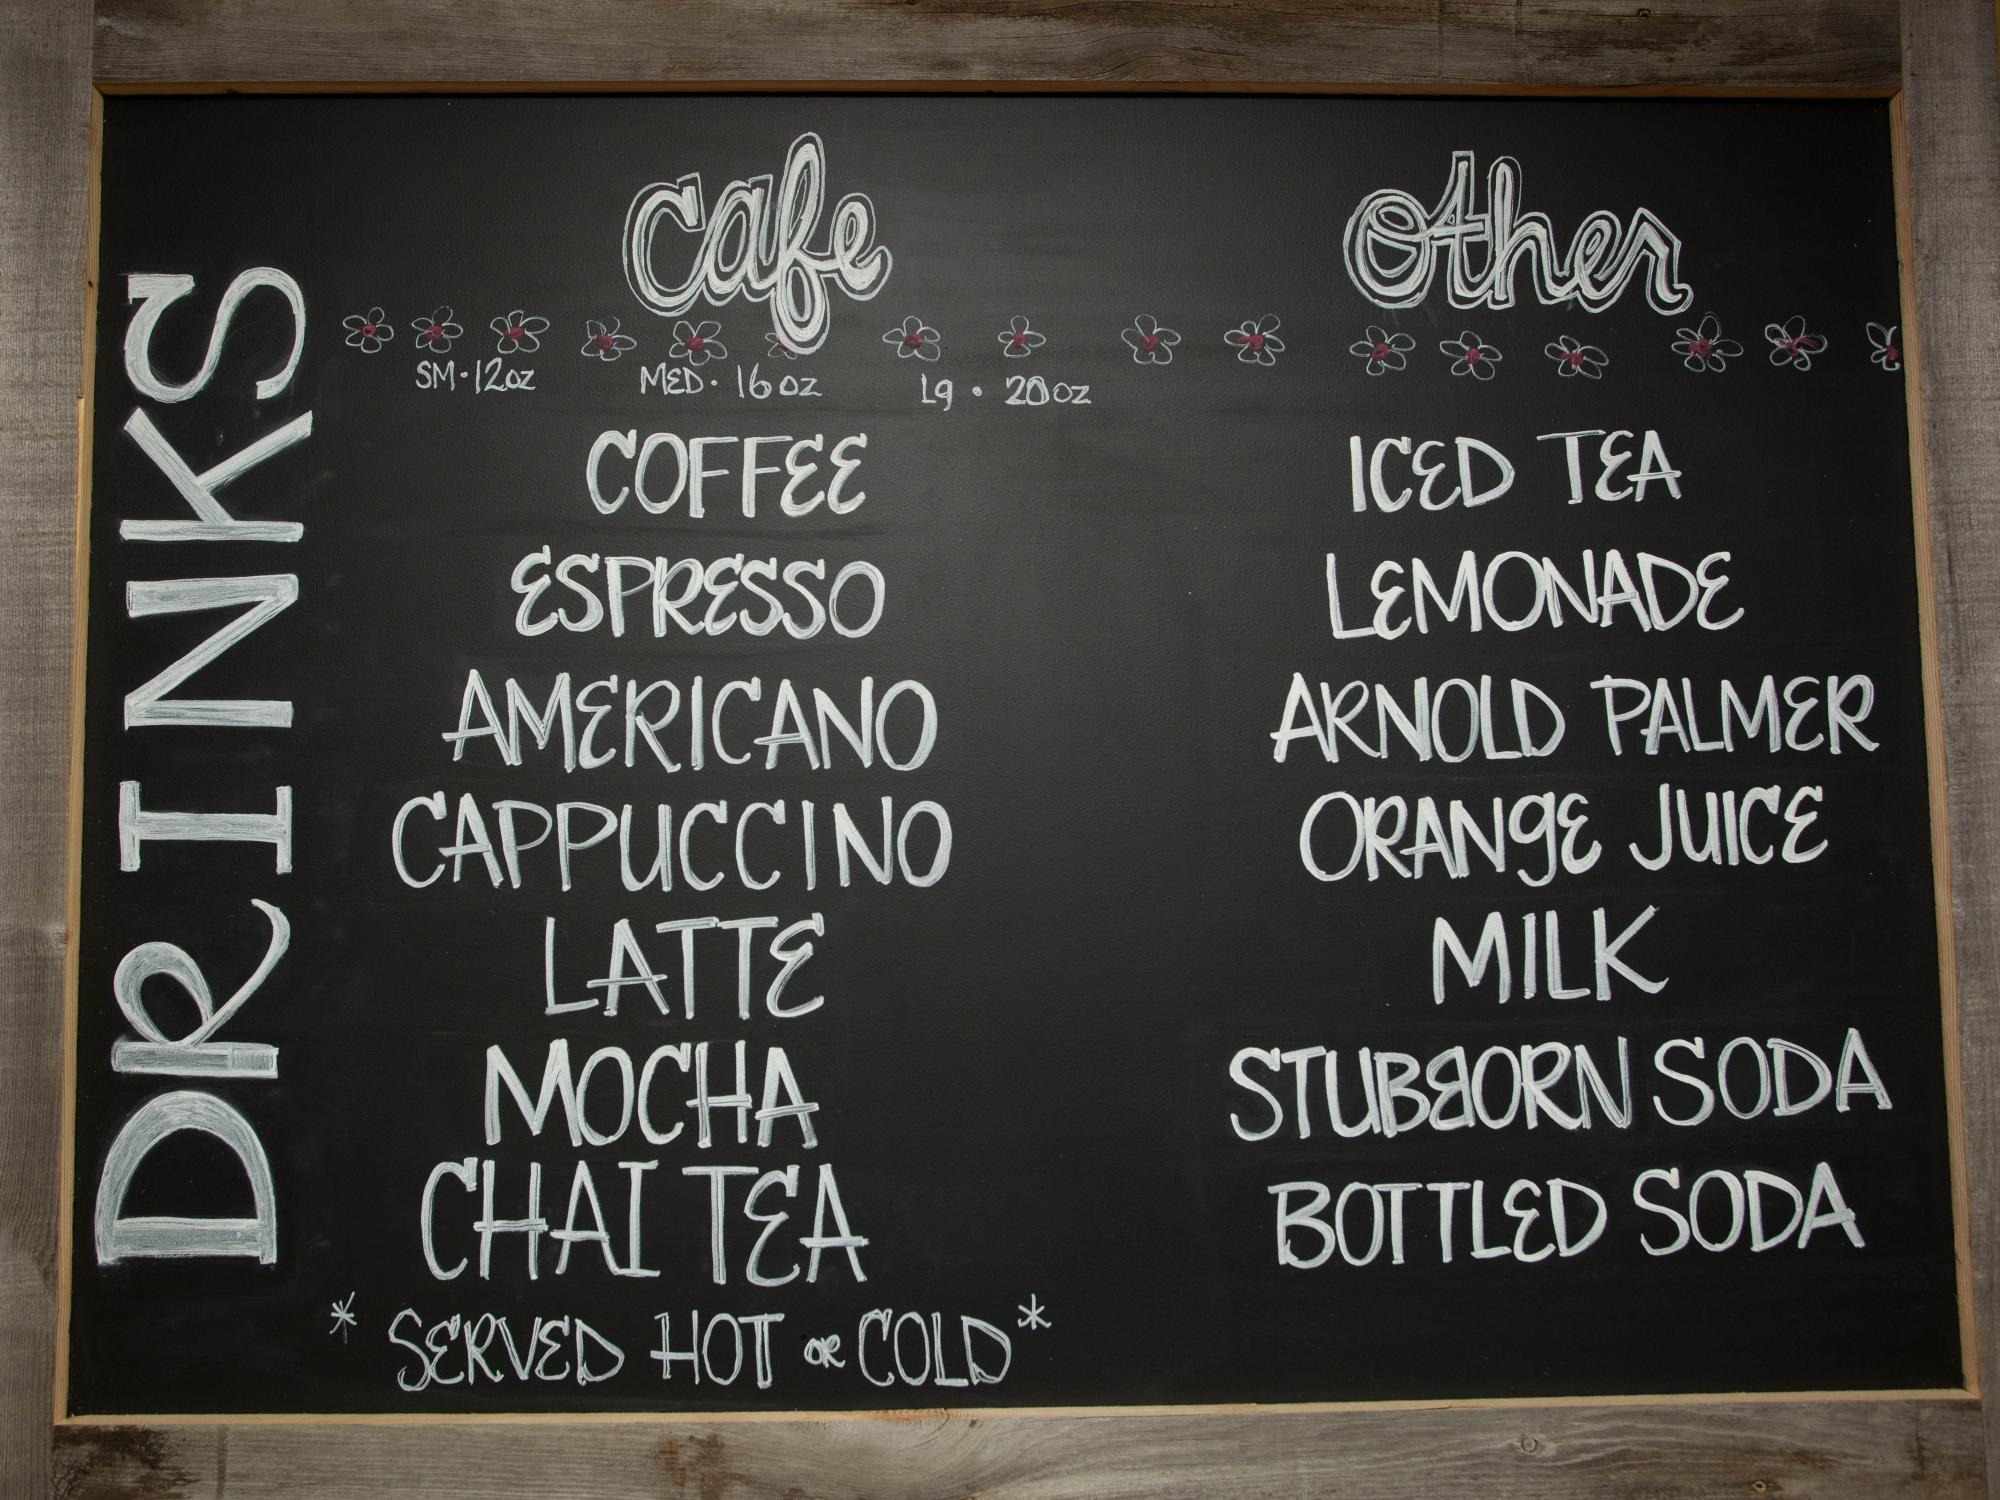 Angels Bakery And Cafe Menu